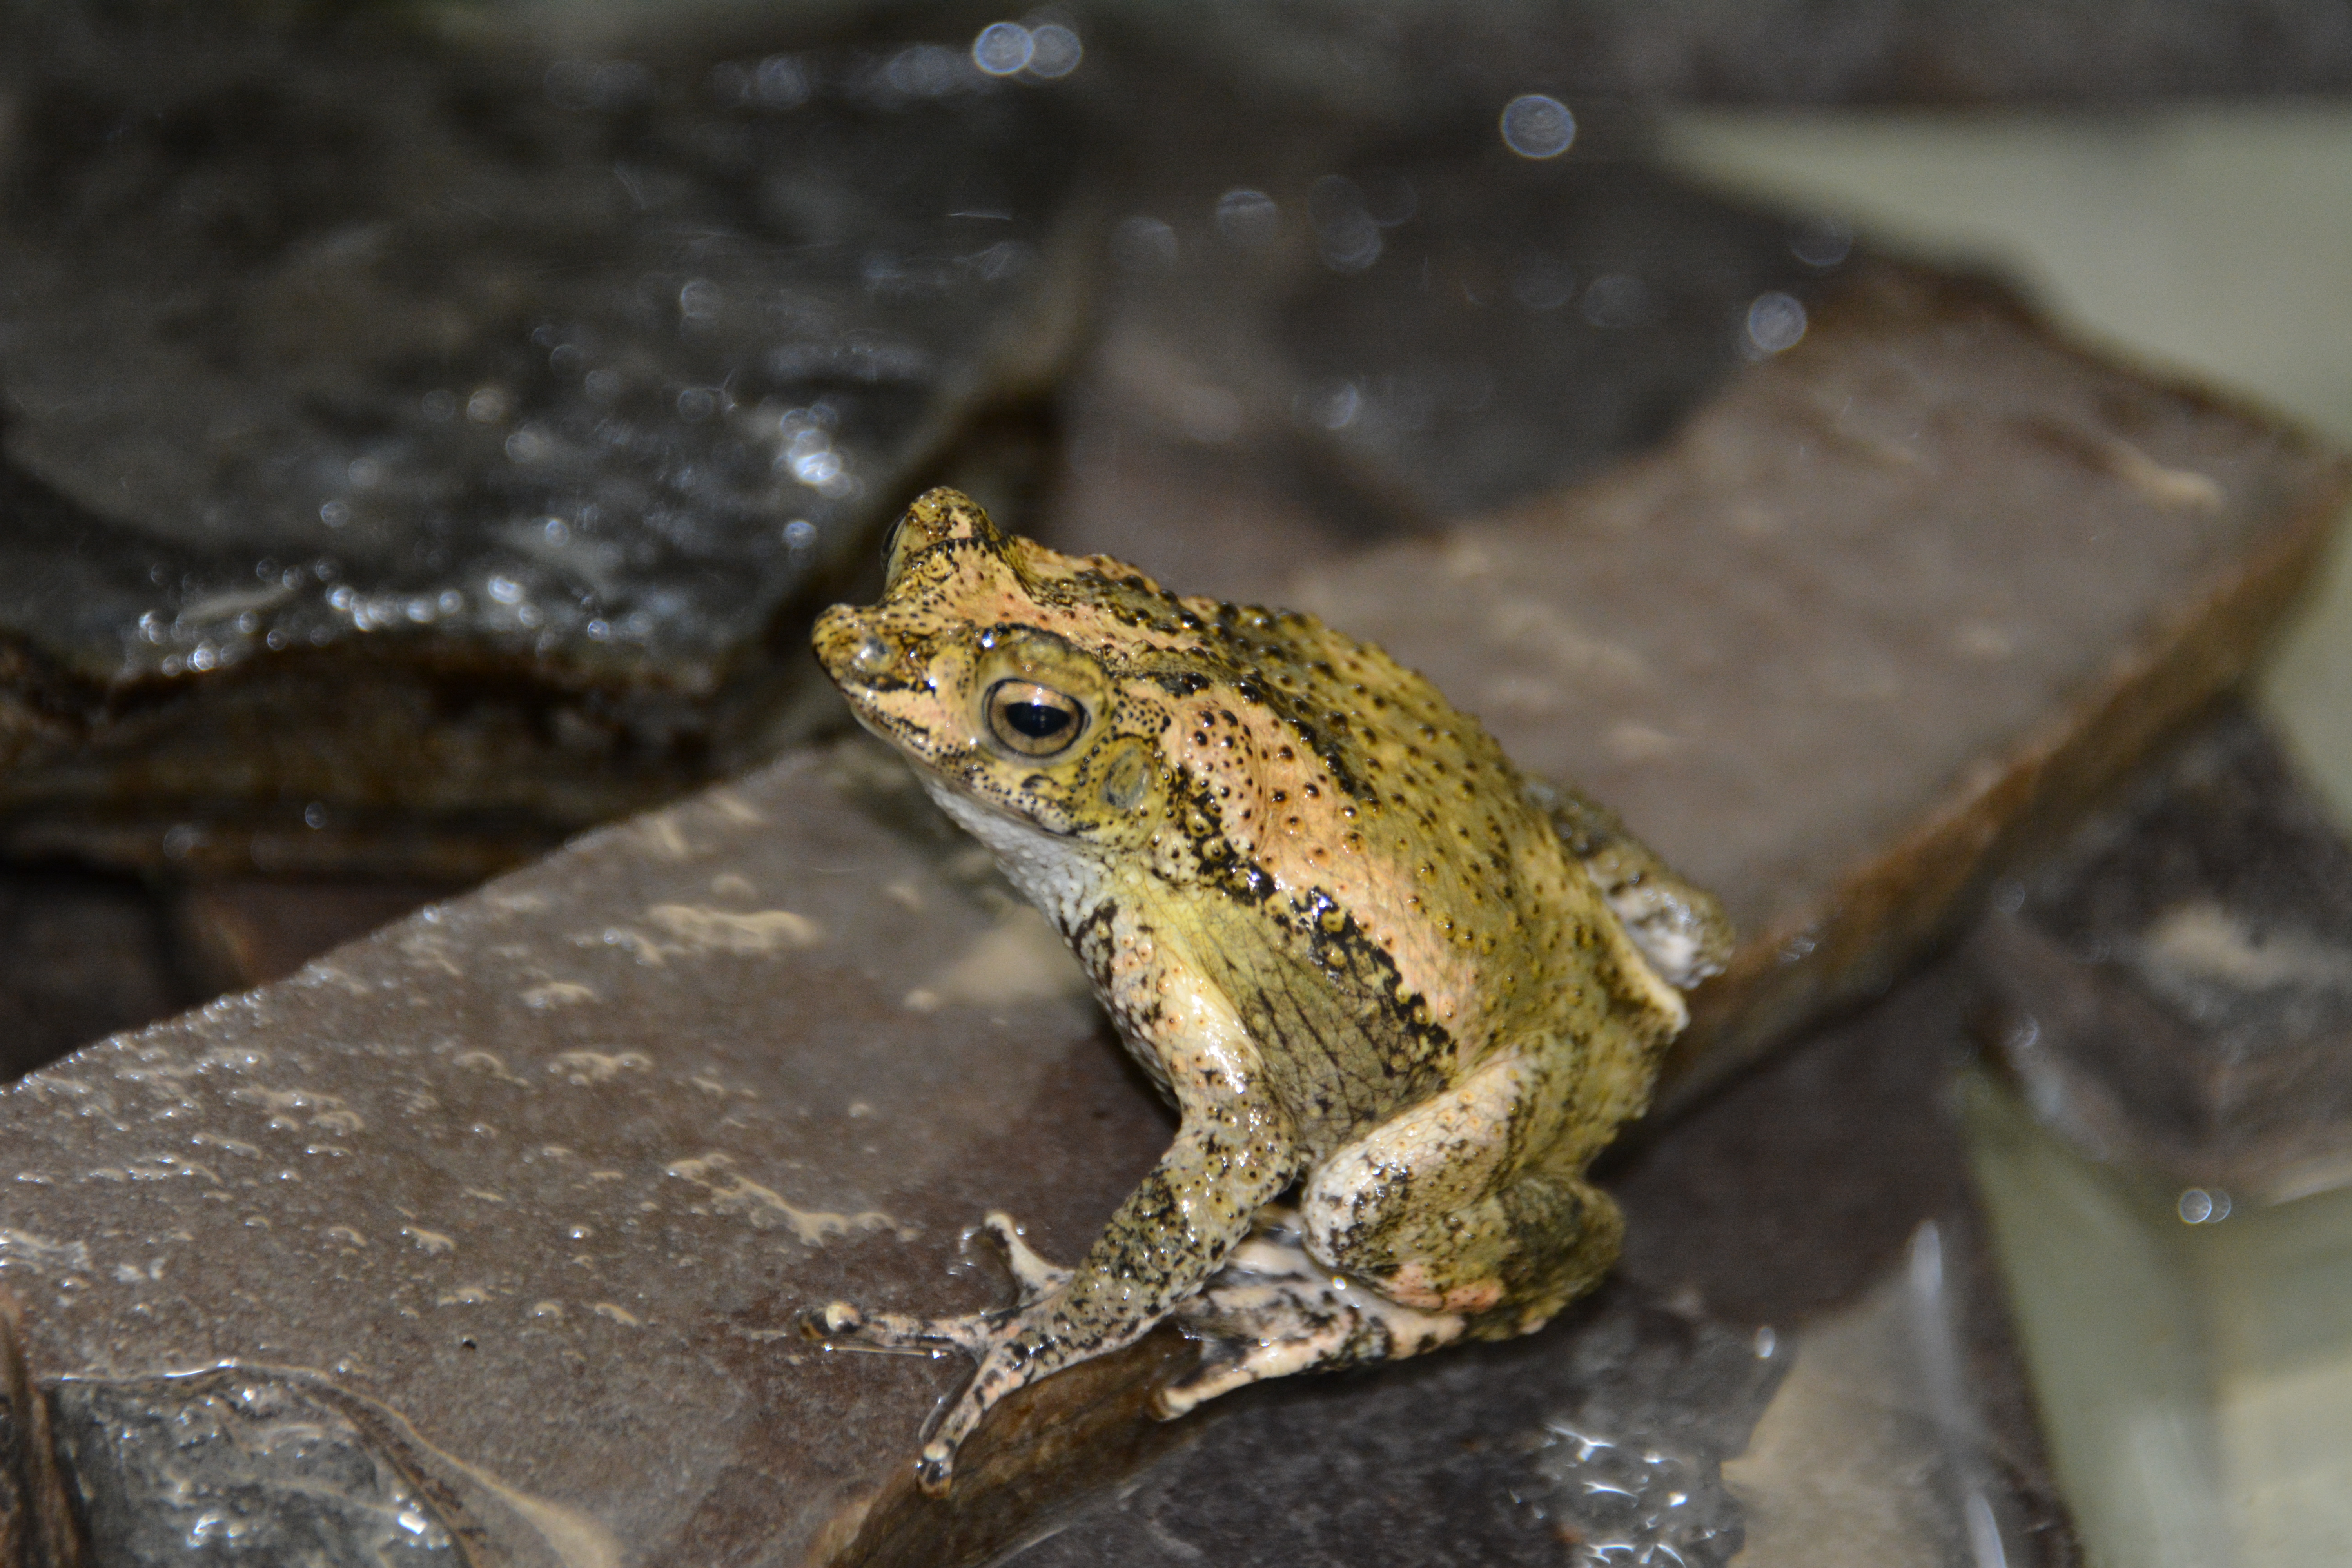 Tadpoles are the young of amphibians particularly frogs and toads